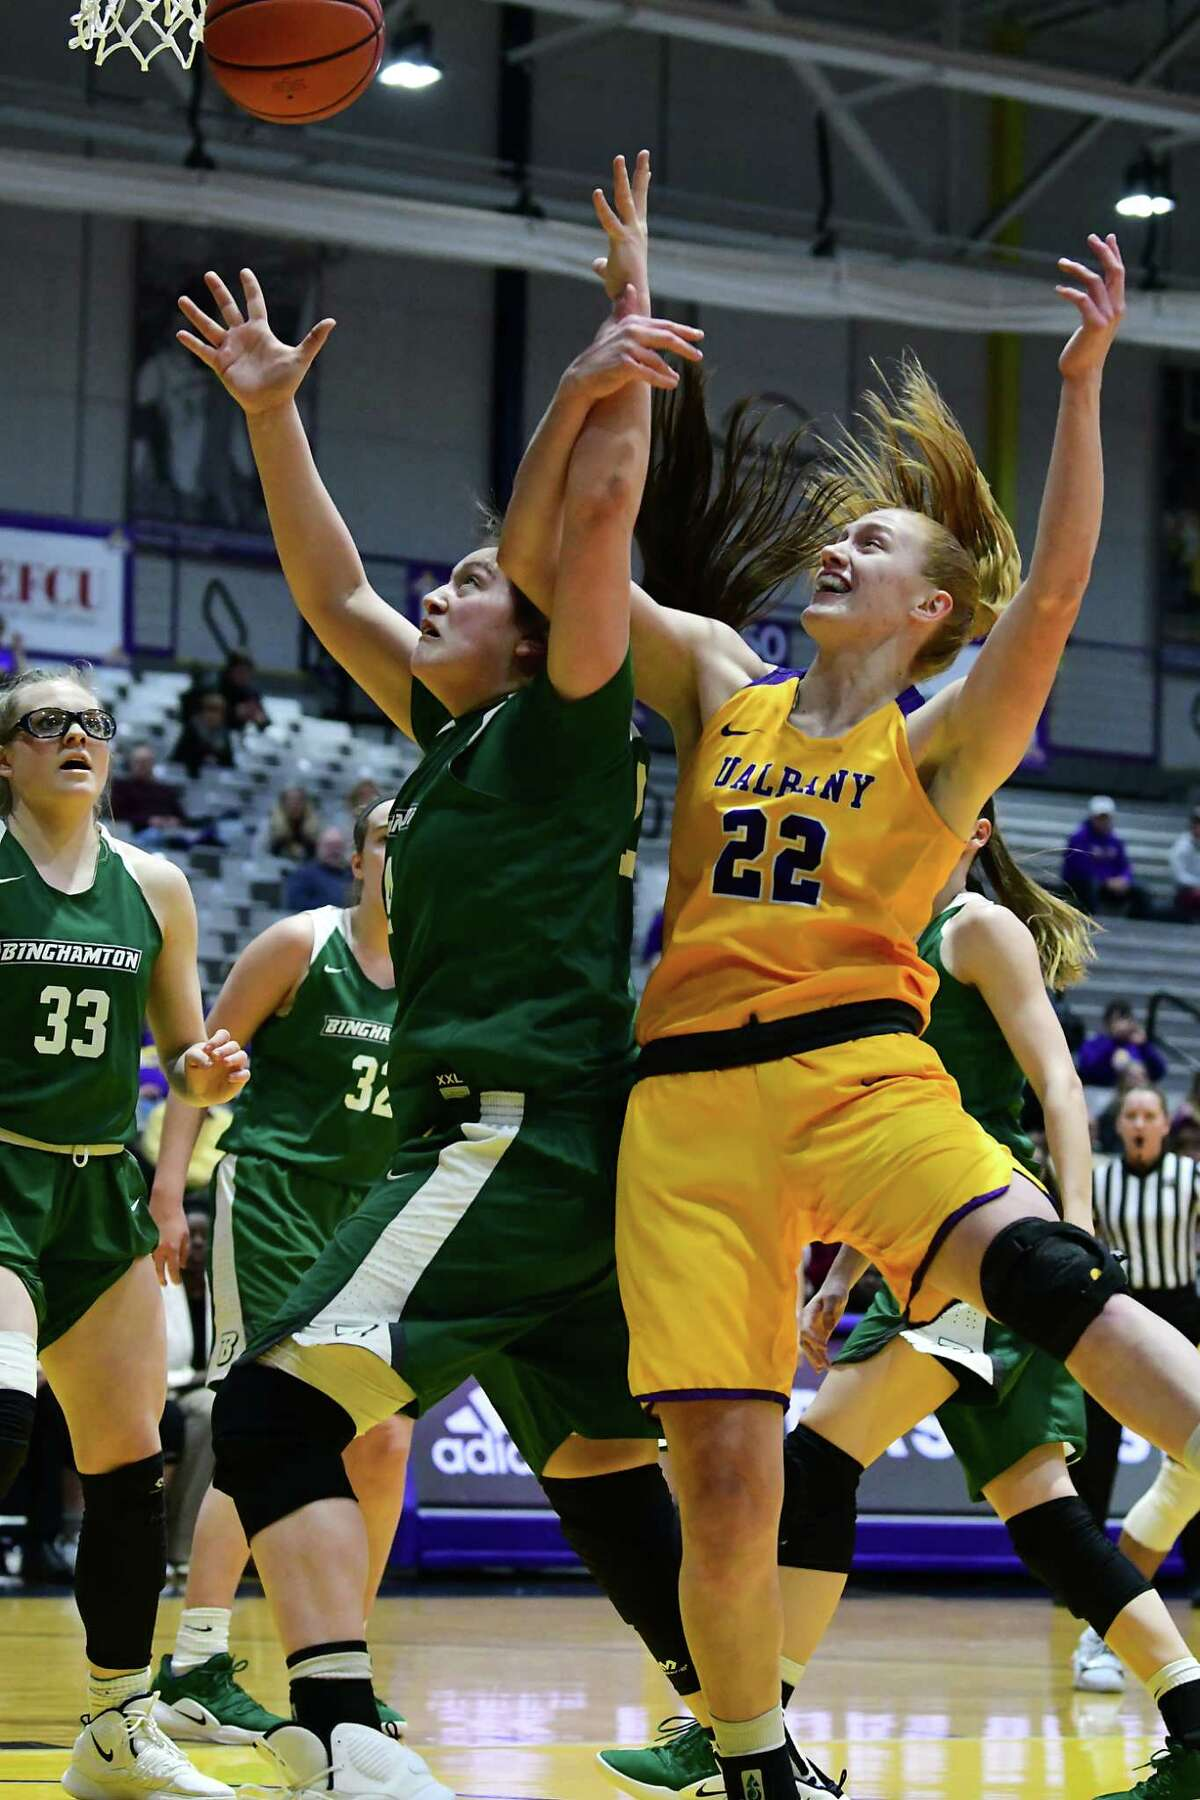 Binghamton's Olivia Ramil, left, and University at Albany's Heather Forster battle for a rebound during a basketball game at the SEFCU Arena on Wednesday, March 6, 2019 in Albany, N.Y. (Lori Van Buren/Times Union)